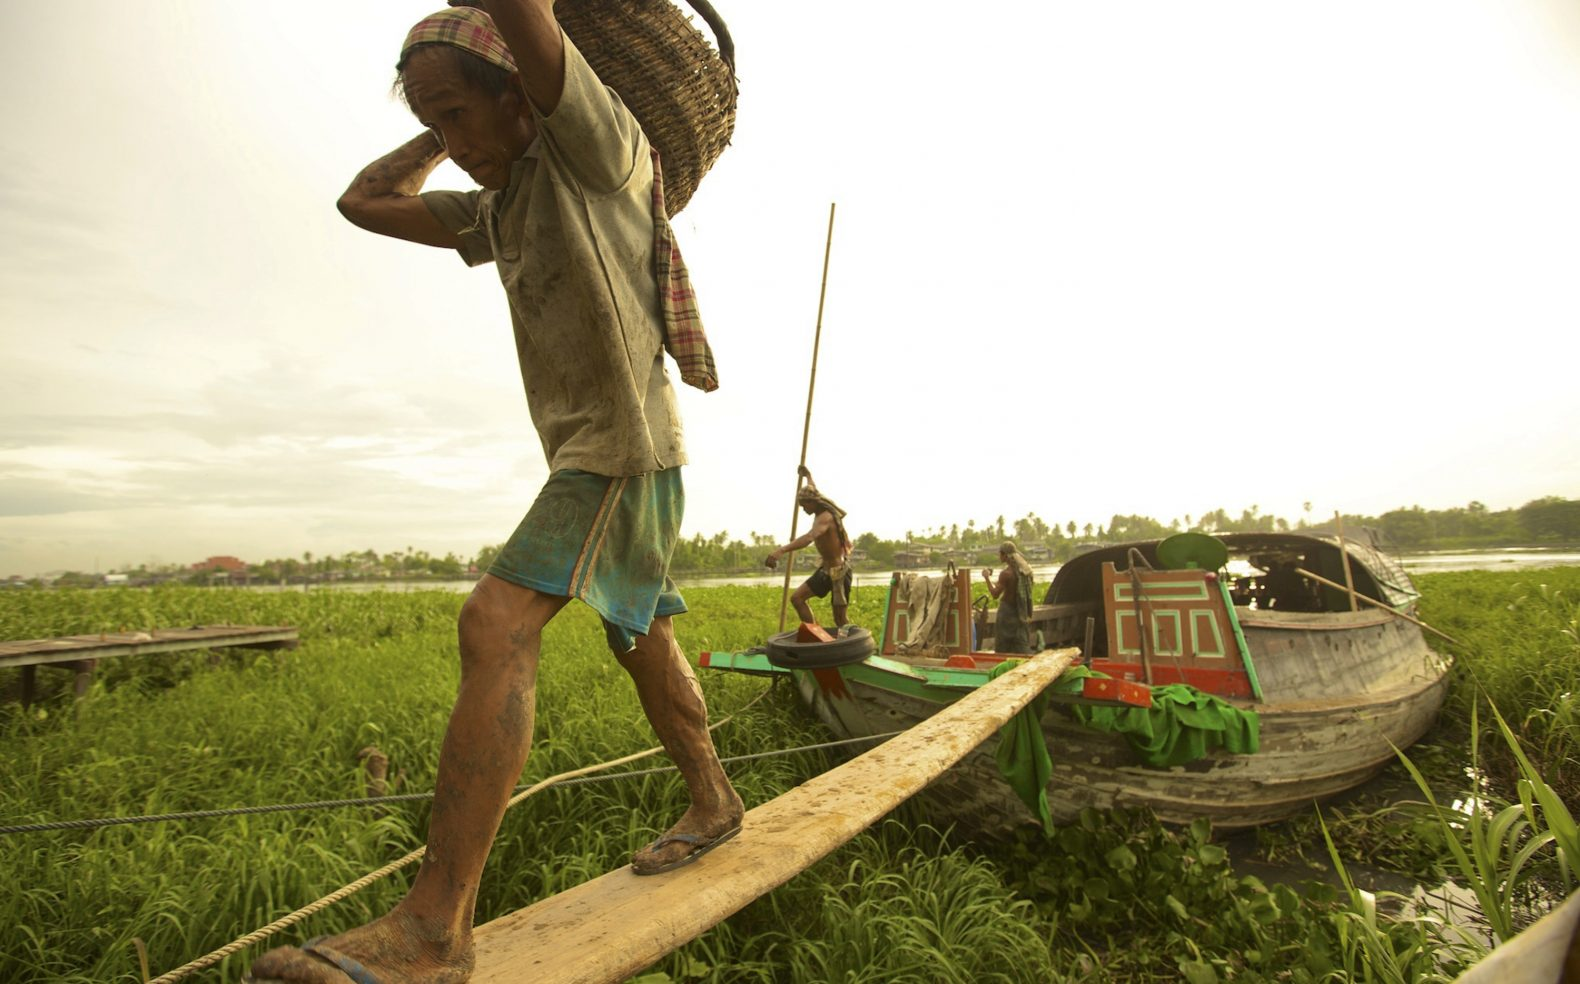 Native farmer in an asian country unloading goods by walking on a wooden board from a boat that sits in high marsh grass.